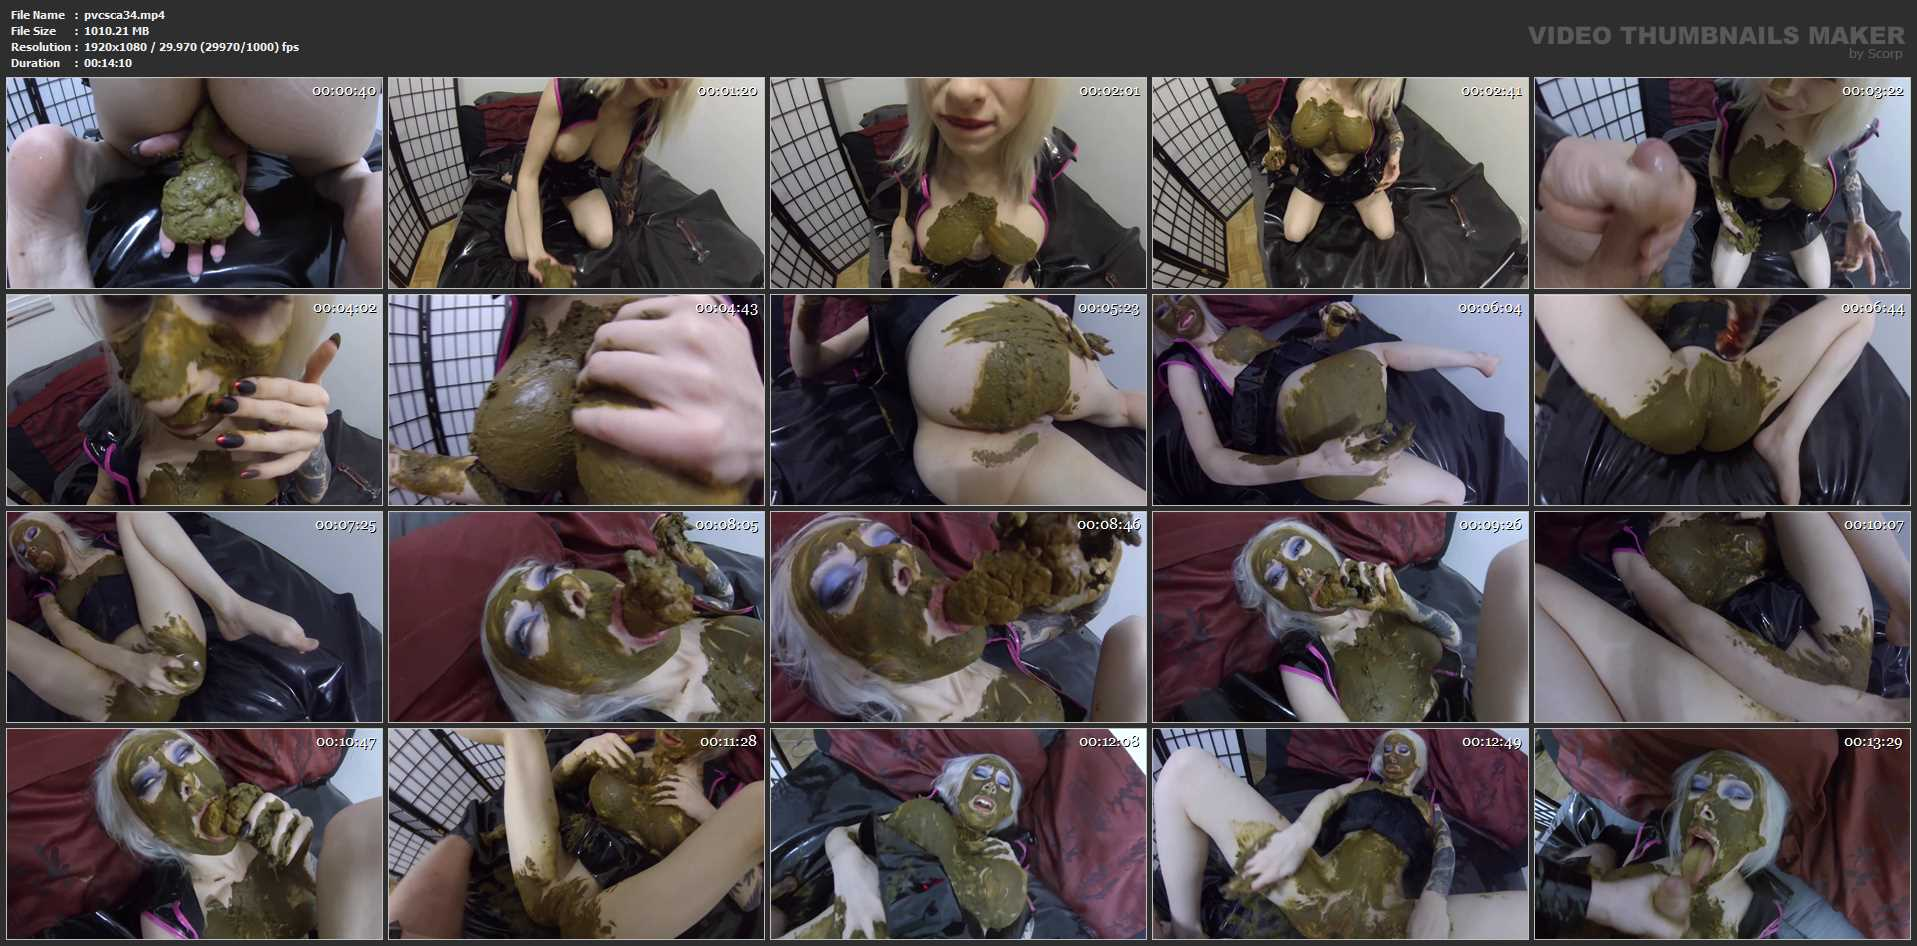 [SCATSHOP / PVC AND SCAT COUPLE] SMOTHERED and STUFFED with poop, then fucked DEEP and HARD. Featuring: Jessica Stinky [FULL HD][1080p][MP4]